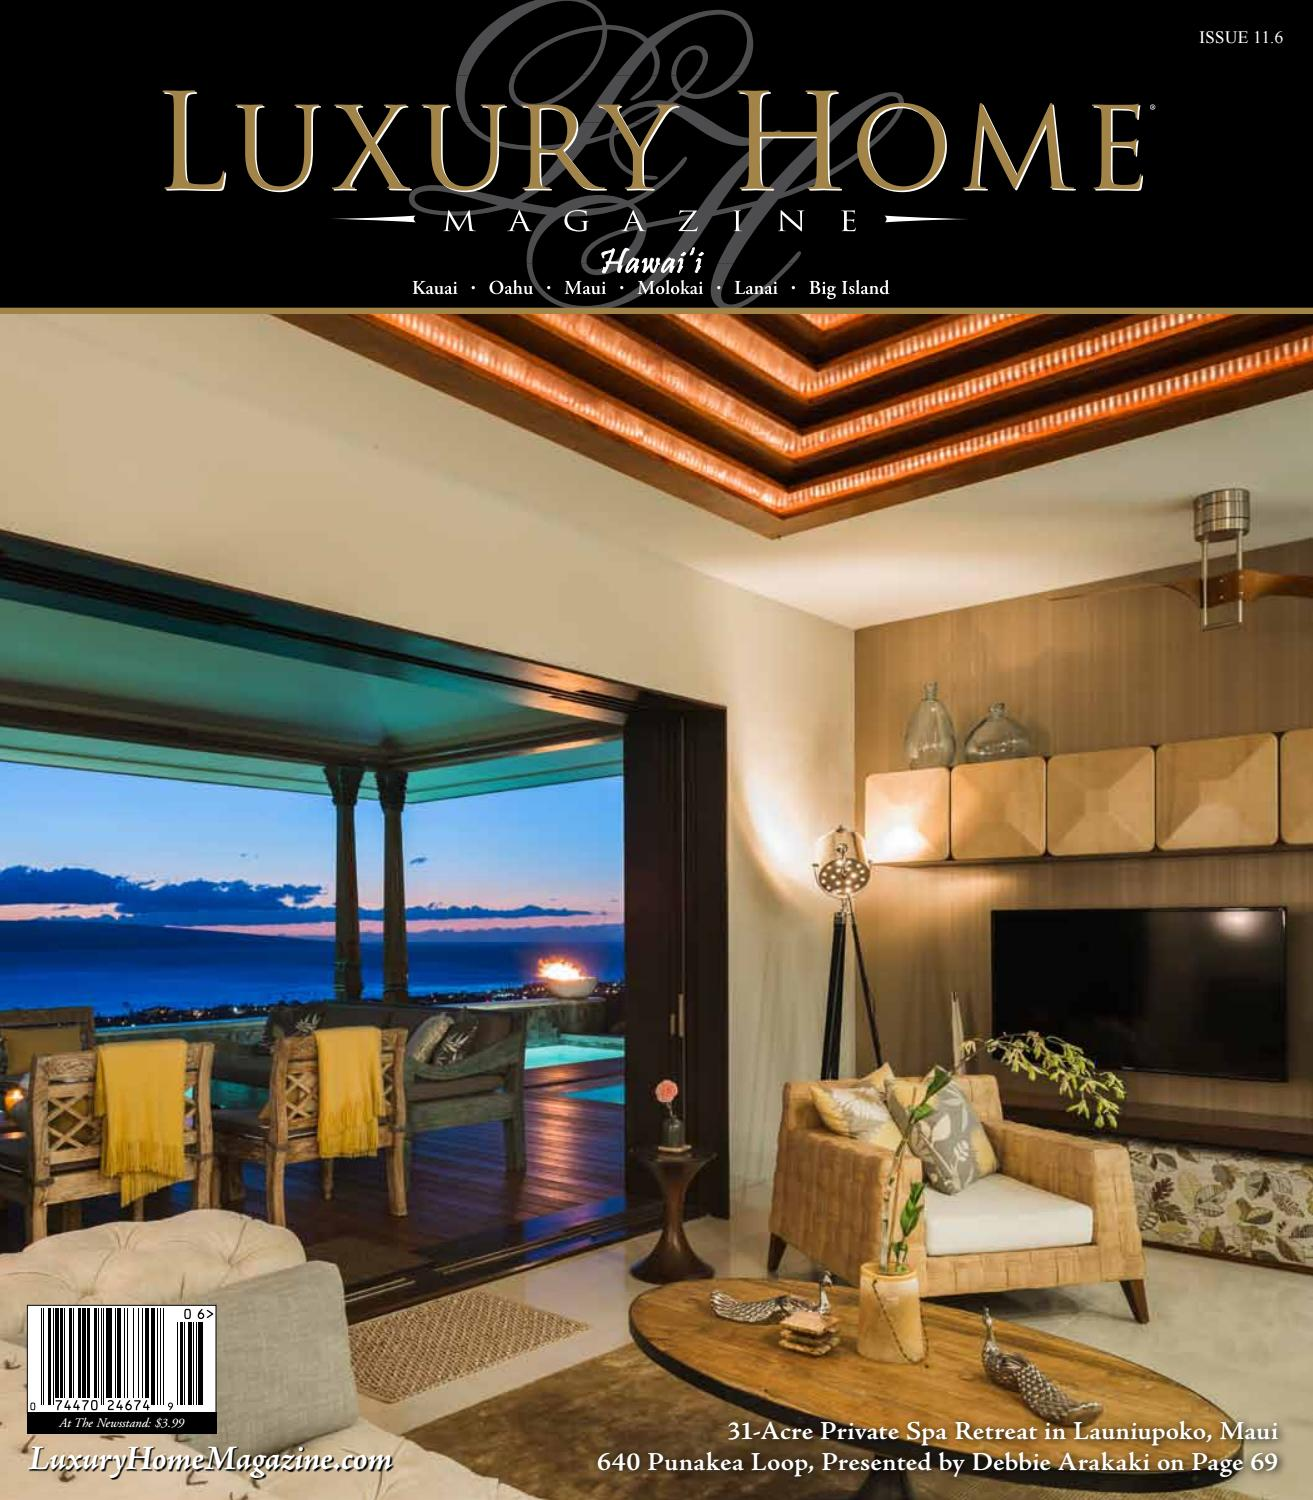 luxury home magazine hawaii issue 11 6 by luxury home magazine issuu